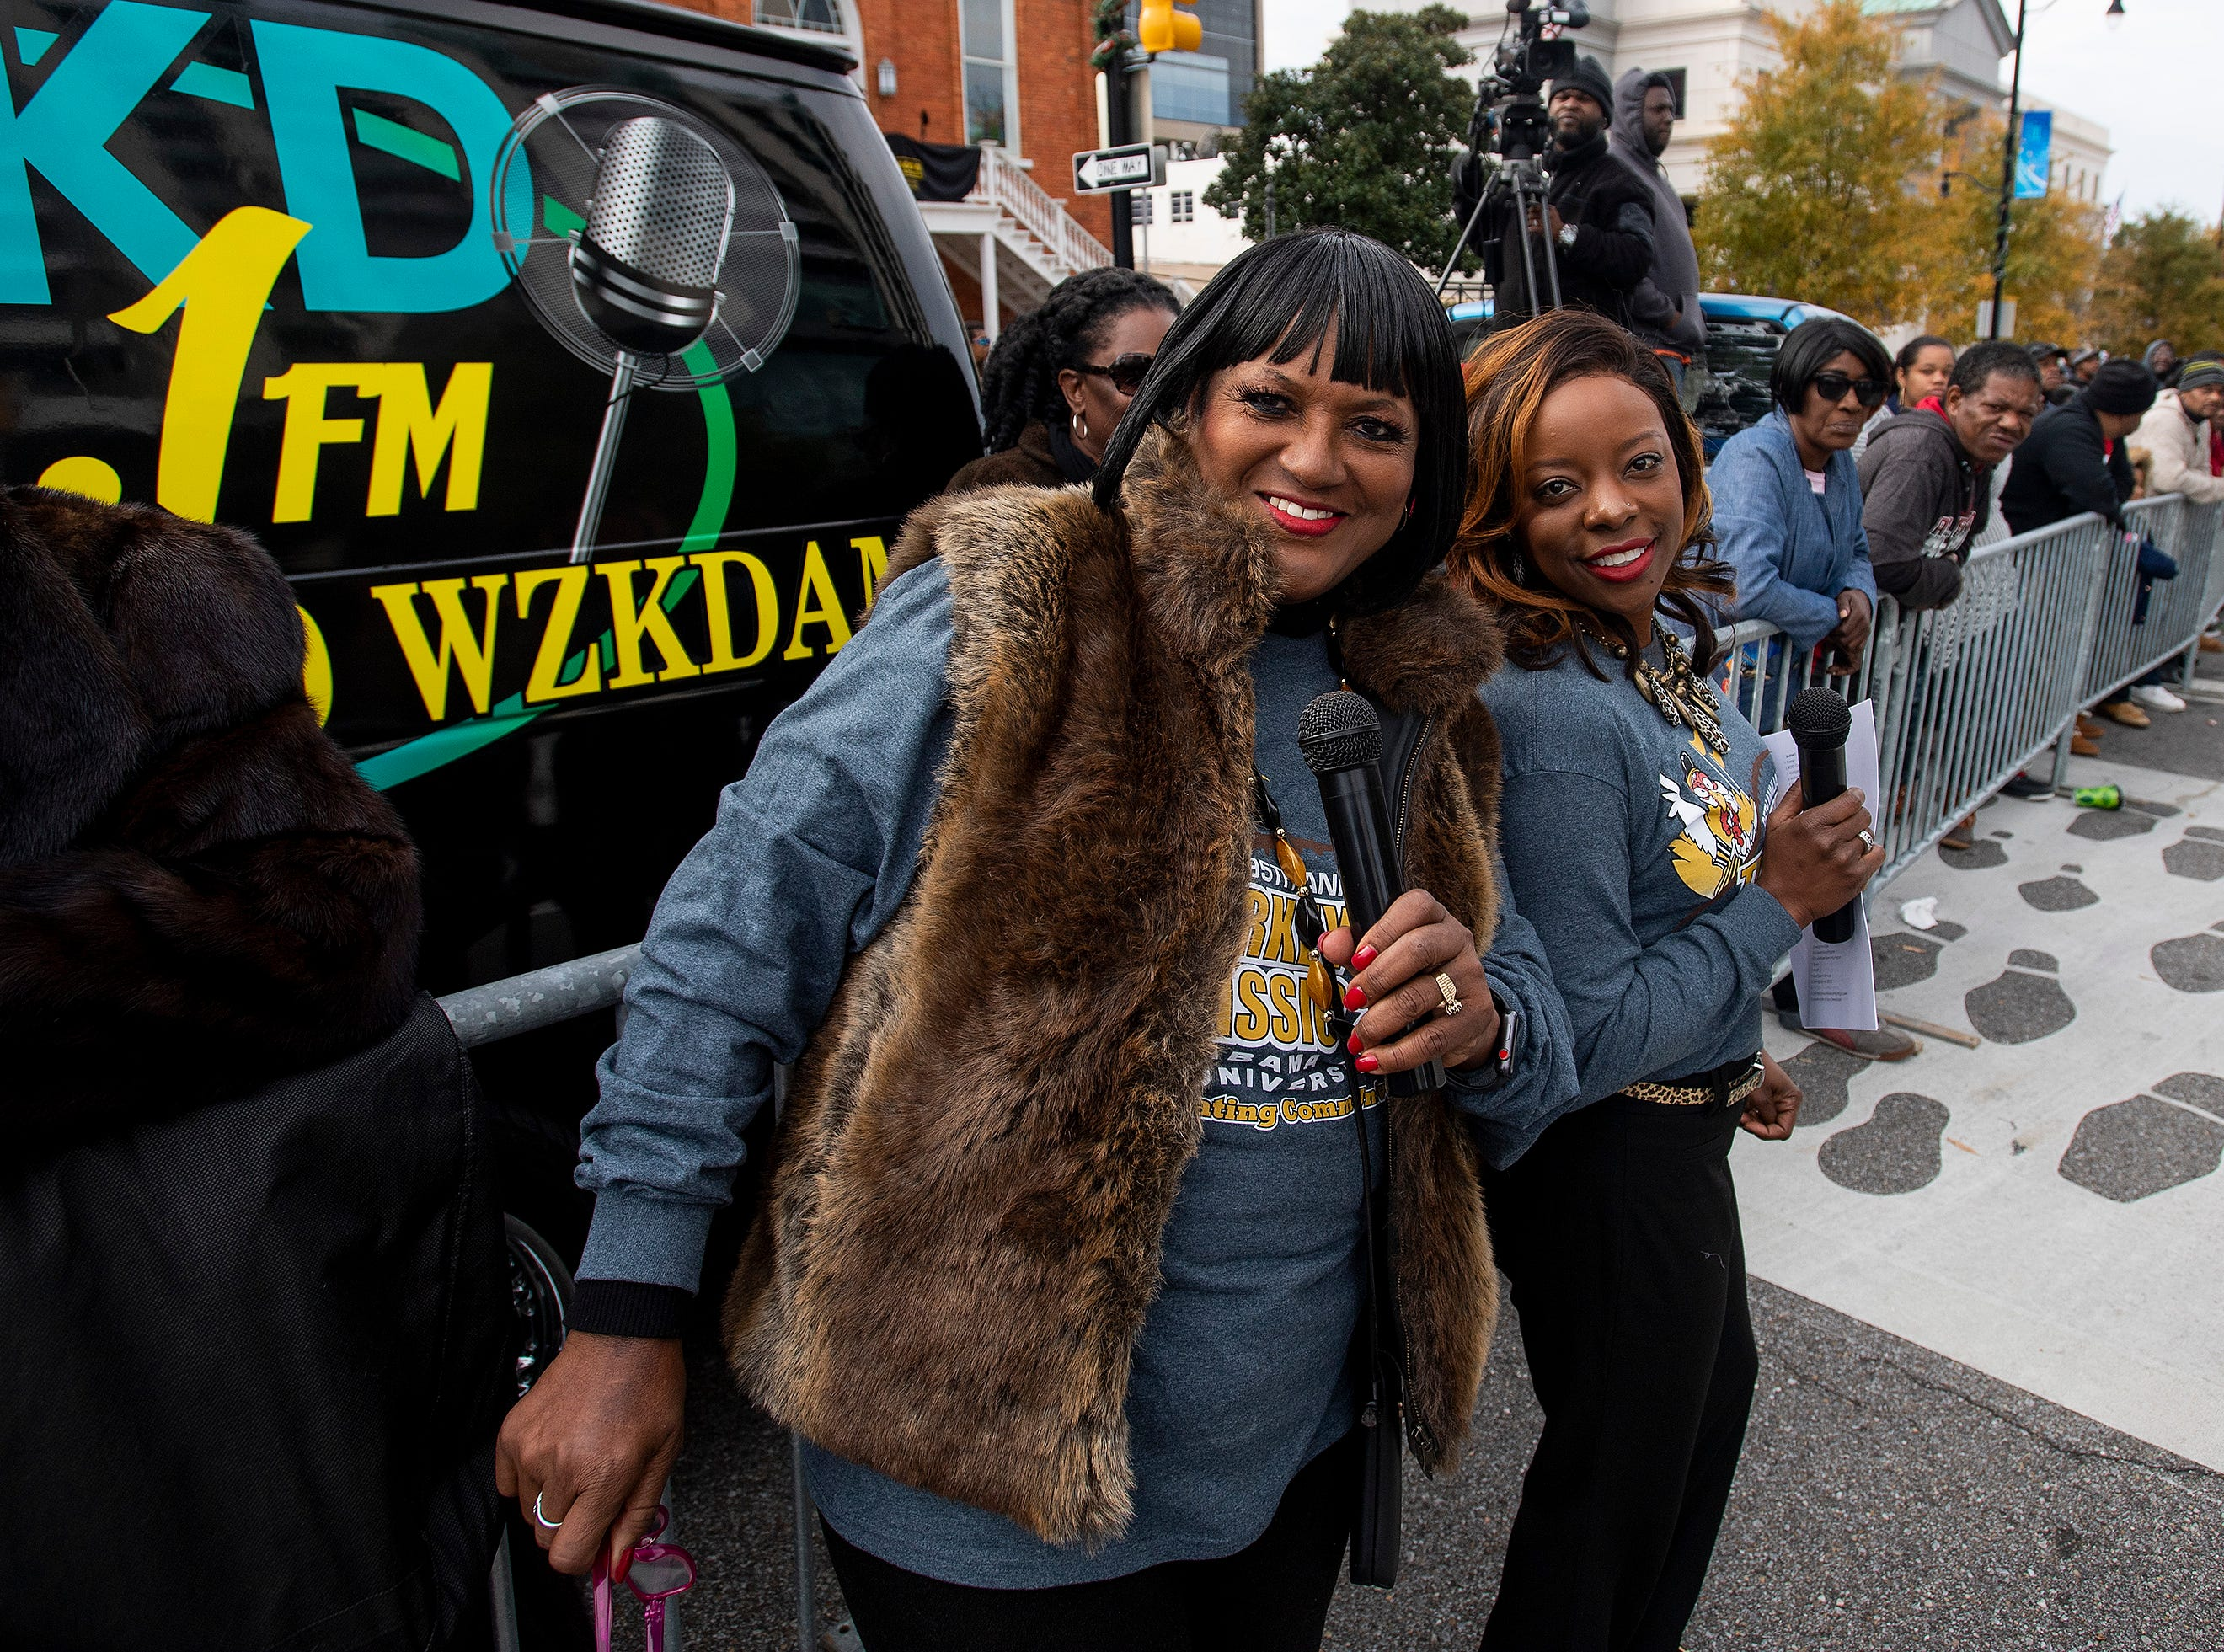 During the Turkey Day Classic Parade in downtown Montgomery, Ala., on Thanksgiving Day, Thursday November 22, 2018.